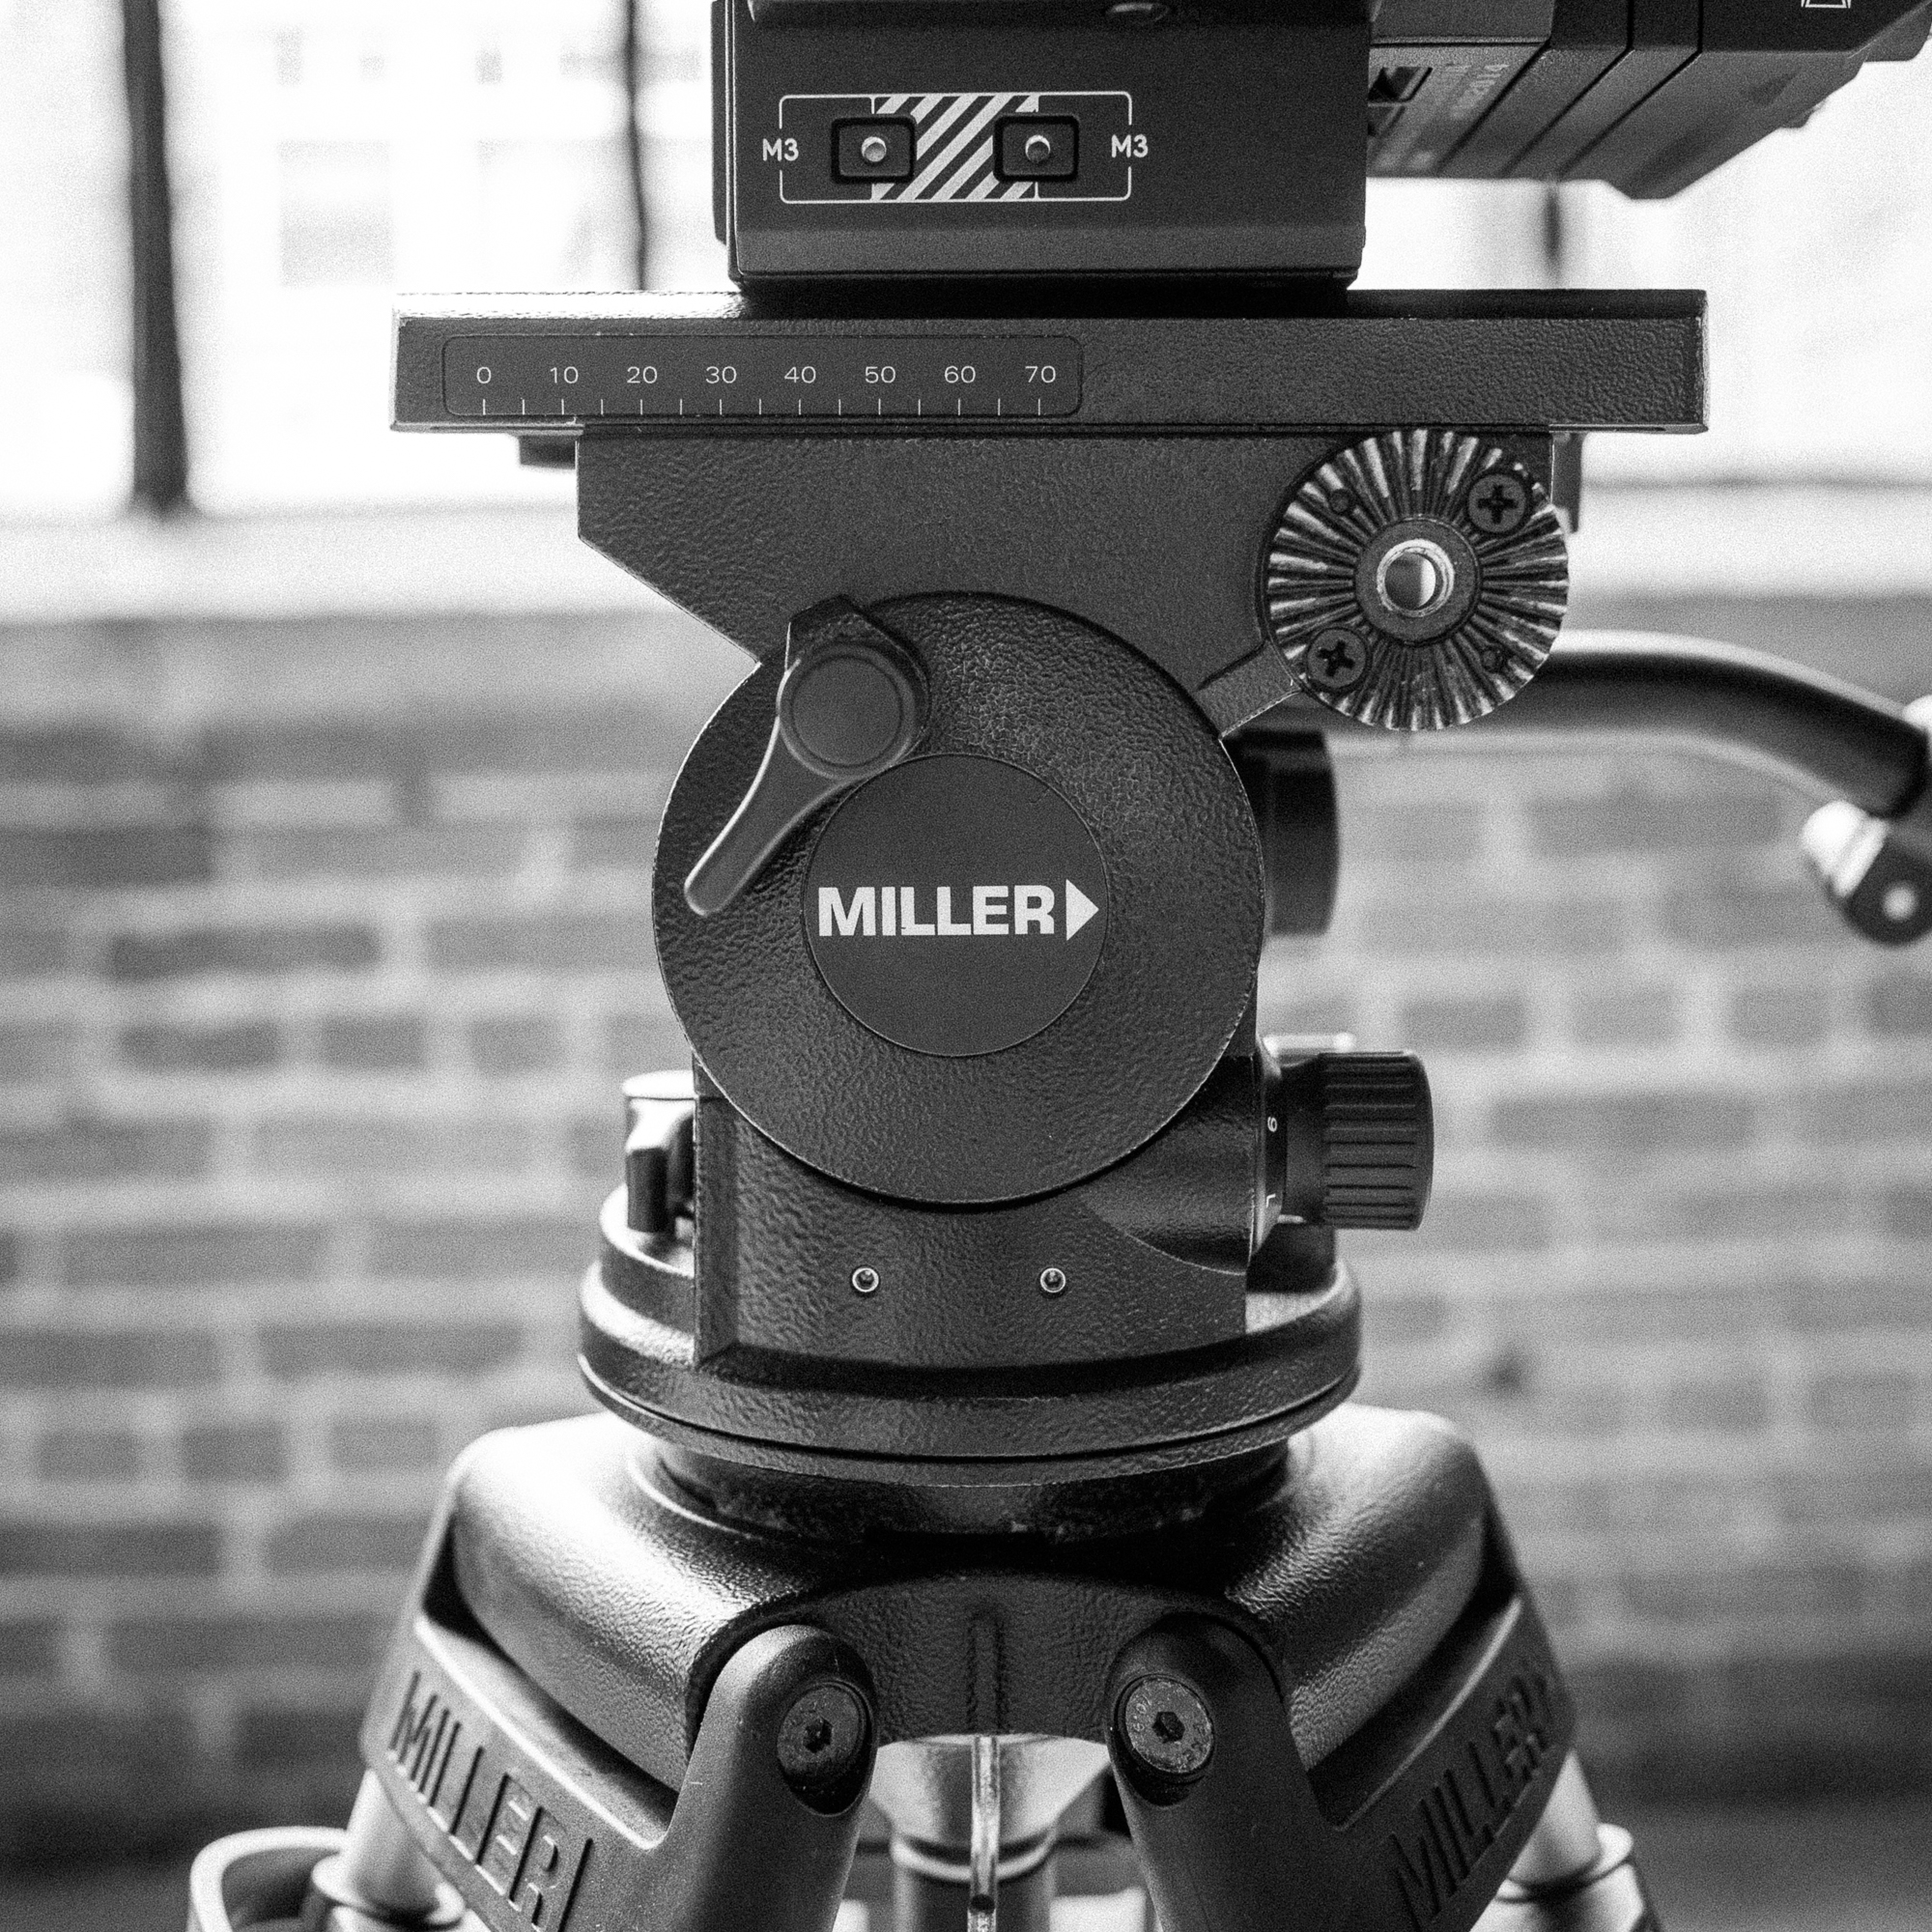 Miller Arrow 40 Tripod   80/day, 320/week, 60/day with studio   Our favorite tripod, it has excellent adjustable pan and tilt drag adjustments and can be tilted to a full 90deg.  Weight limit 35lb, 100mm bowl.   product info